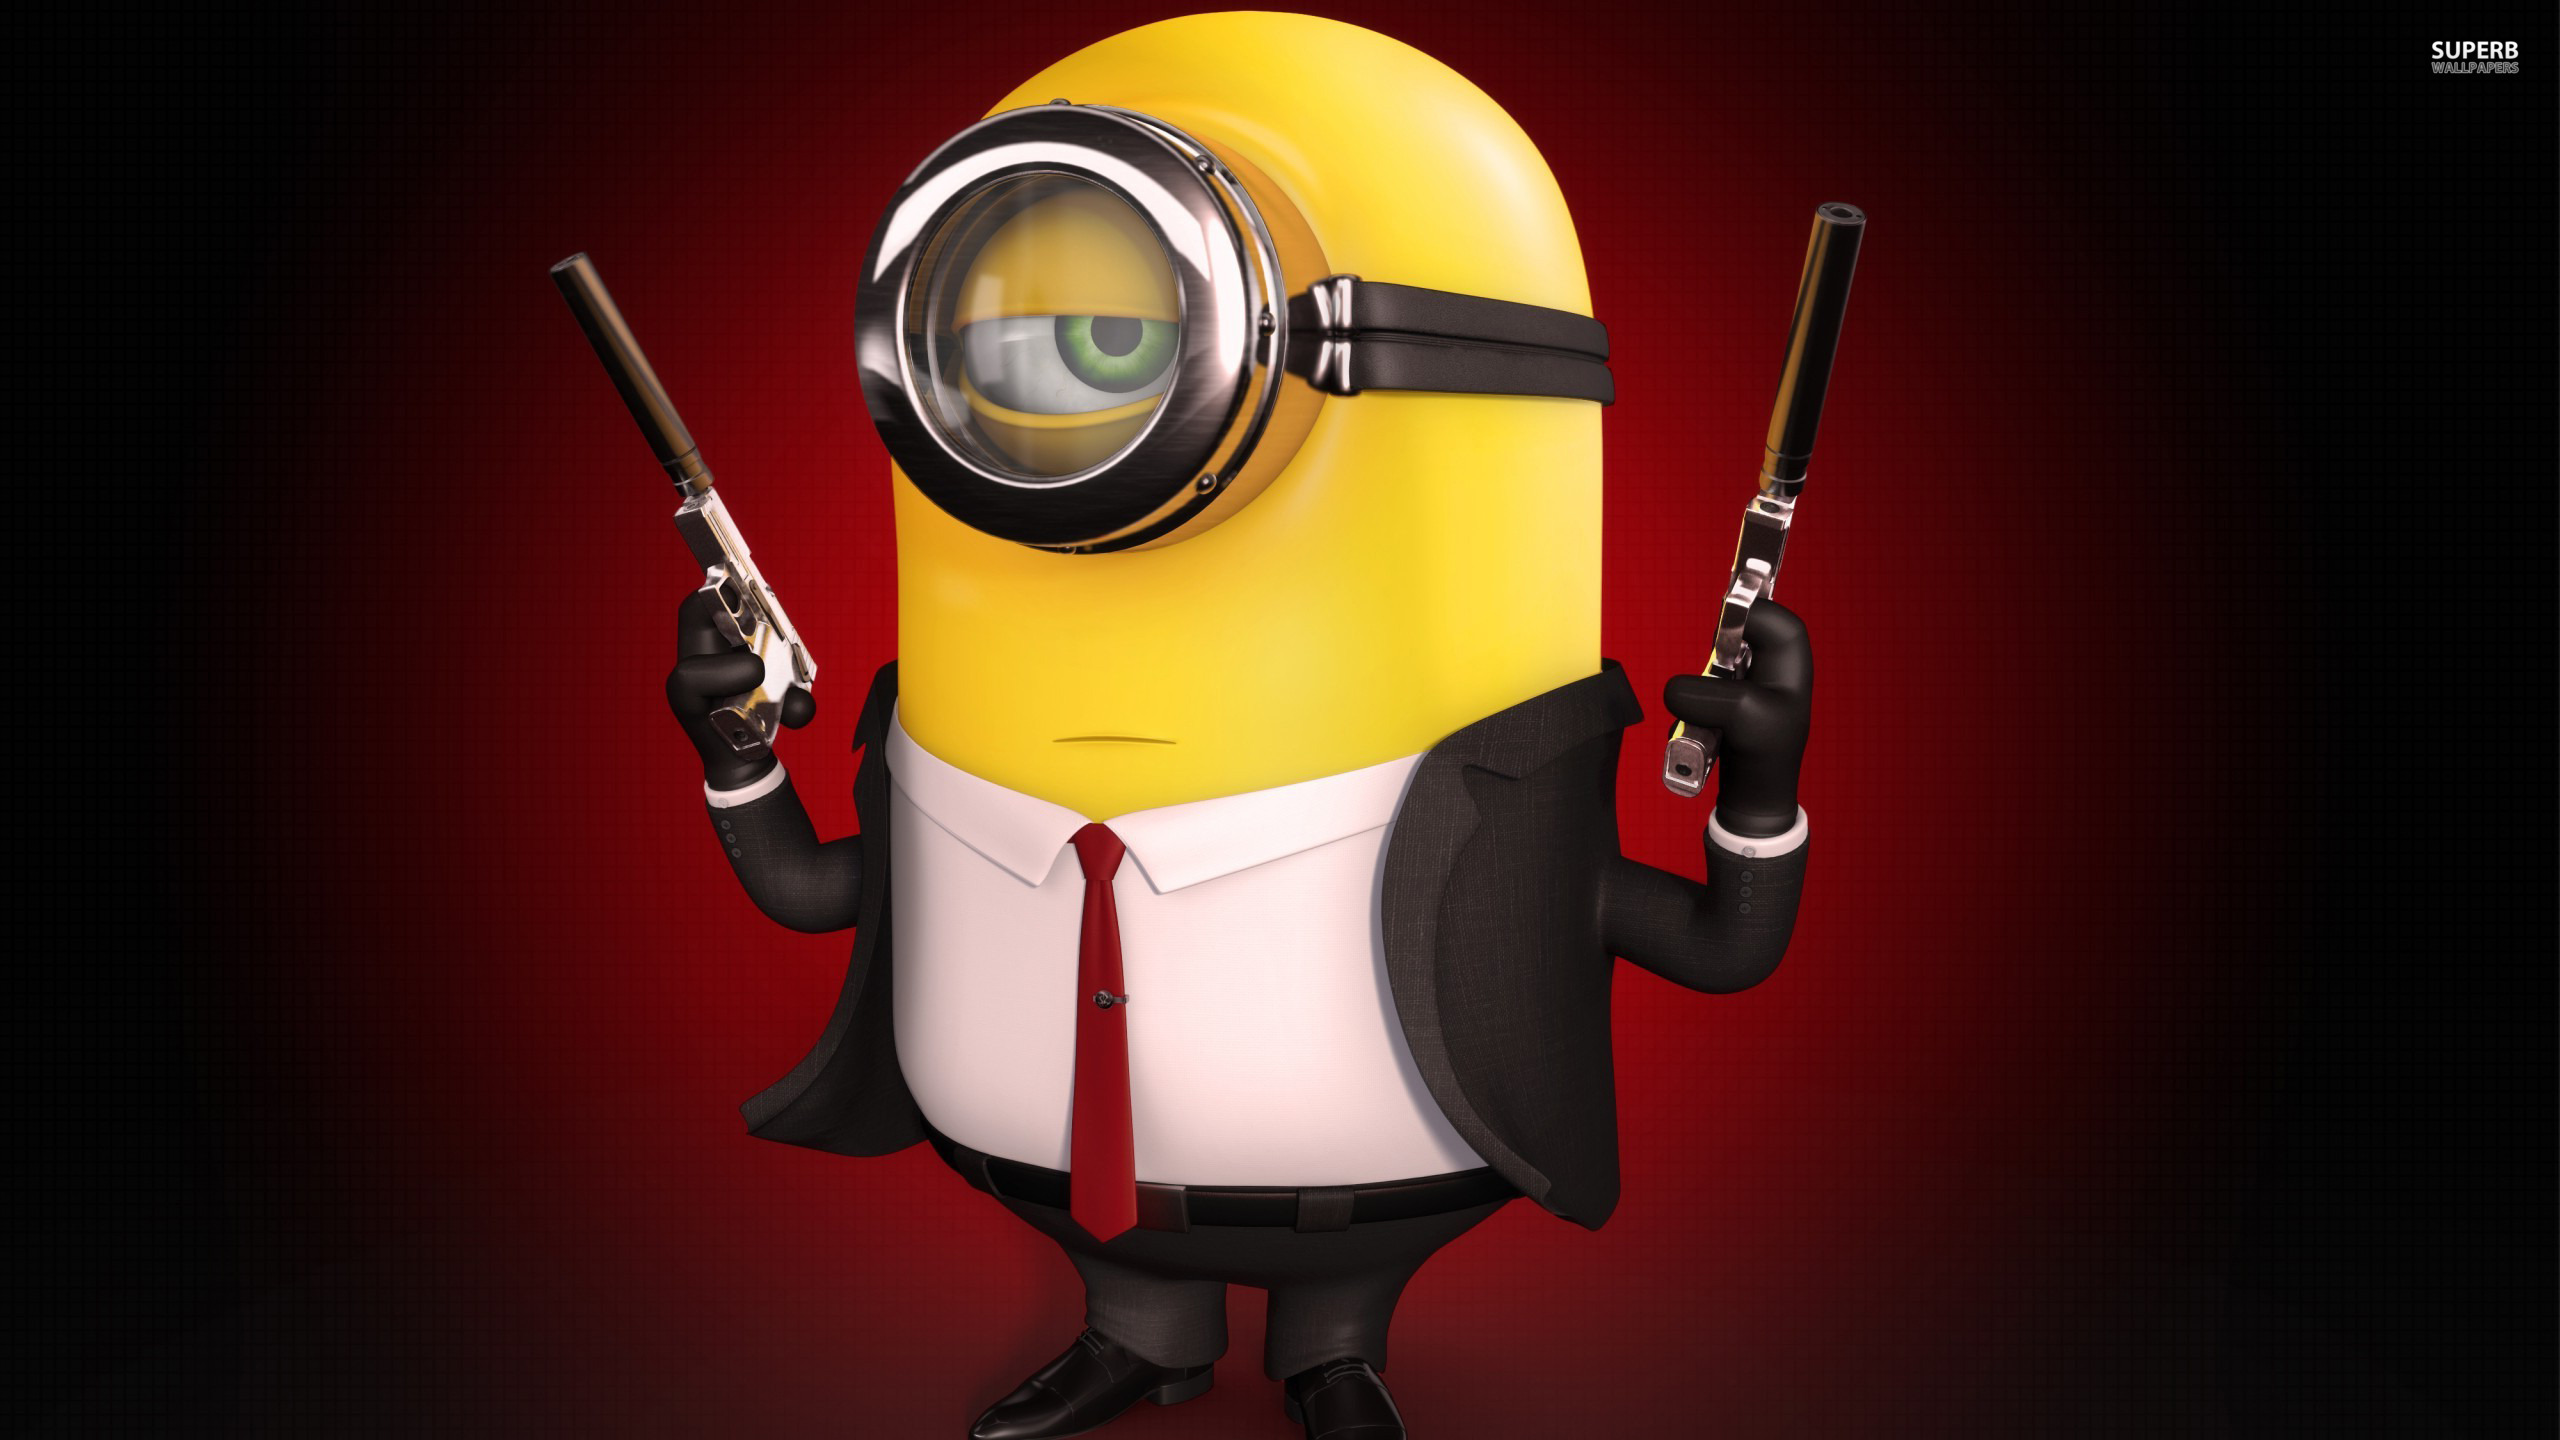 Hitman minion wallpaper 2560x1440 jpg